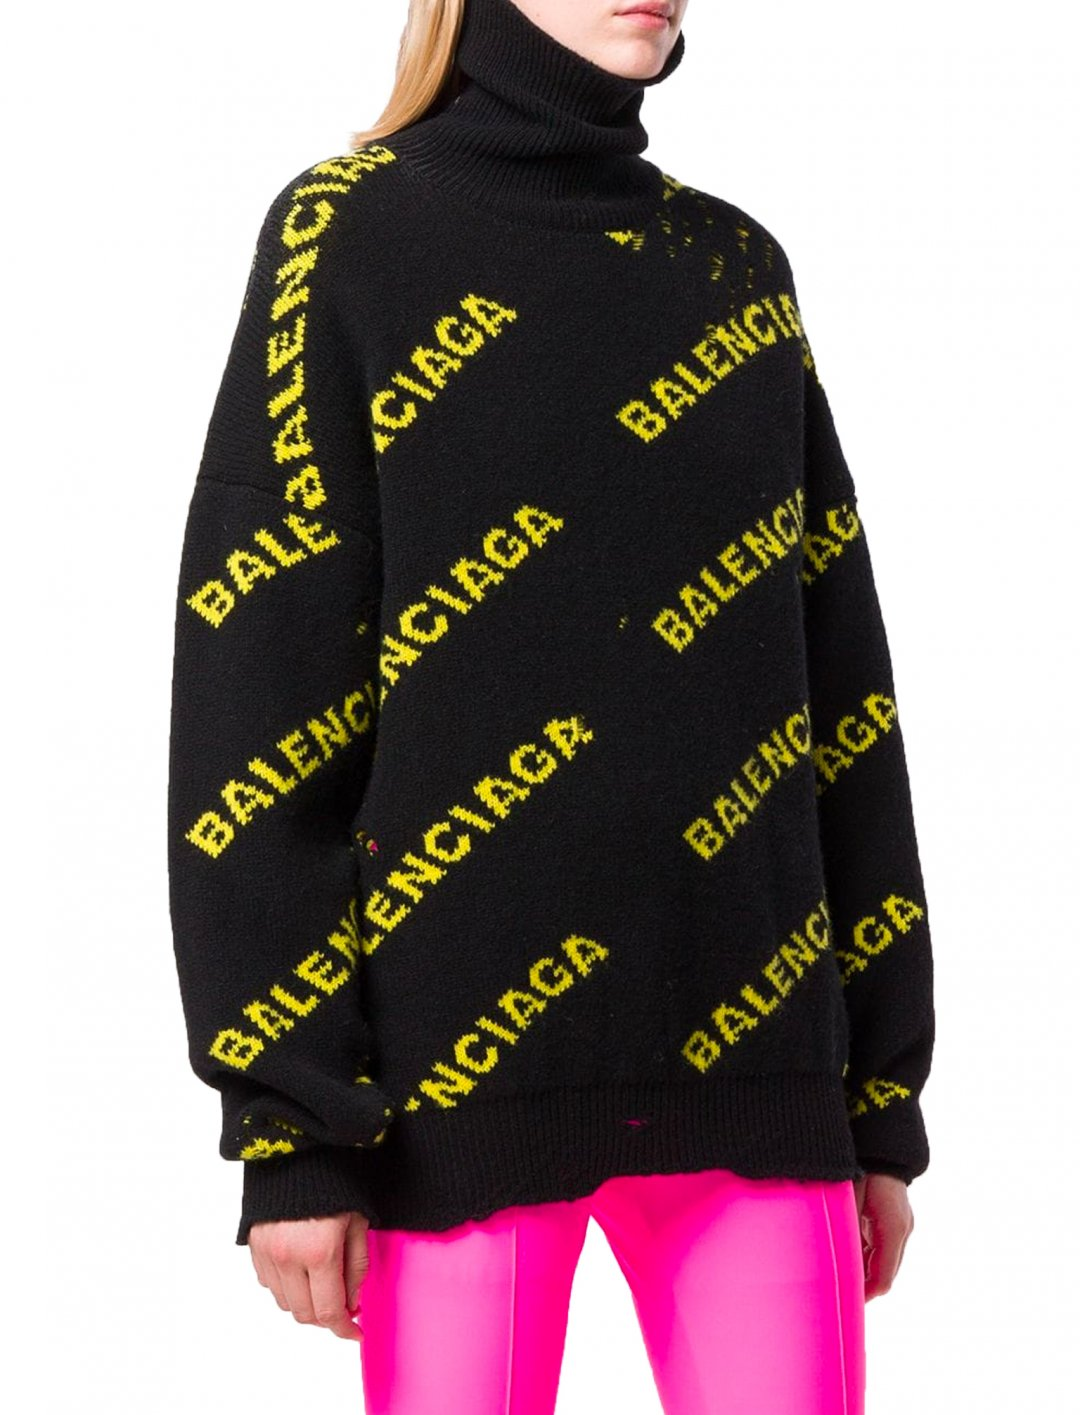 "Turtleneck Sweater {""id"":5,""product_section_id"":1,""name"":""Clothing"",""order"":5} Farfetch x Balenciaga"